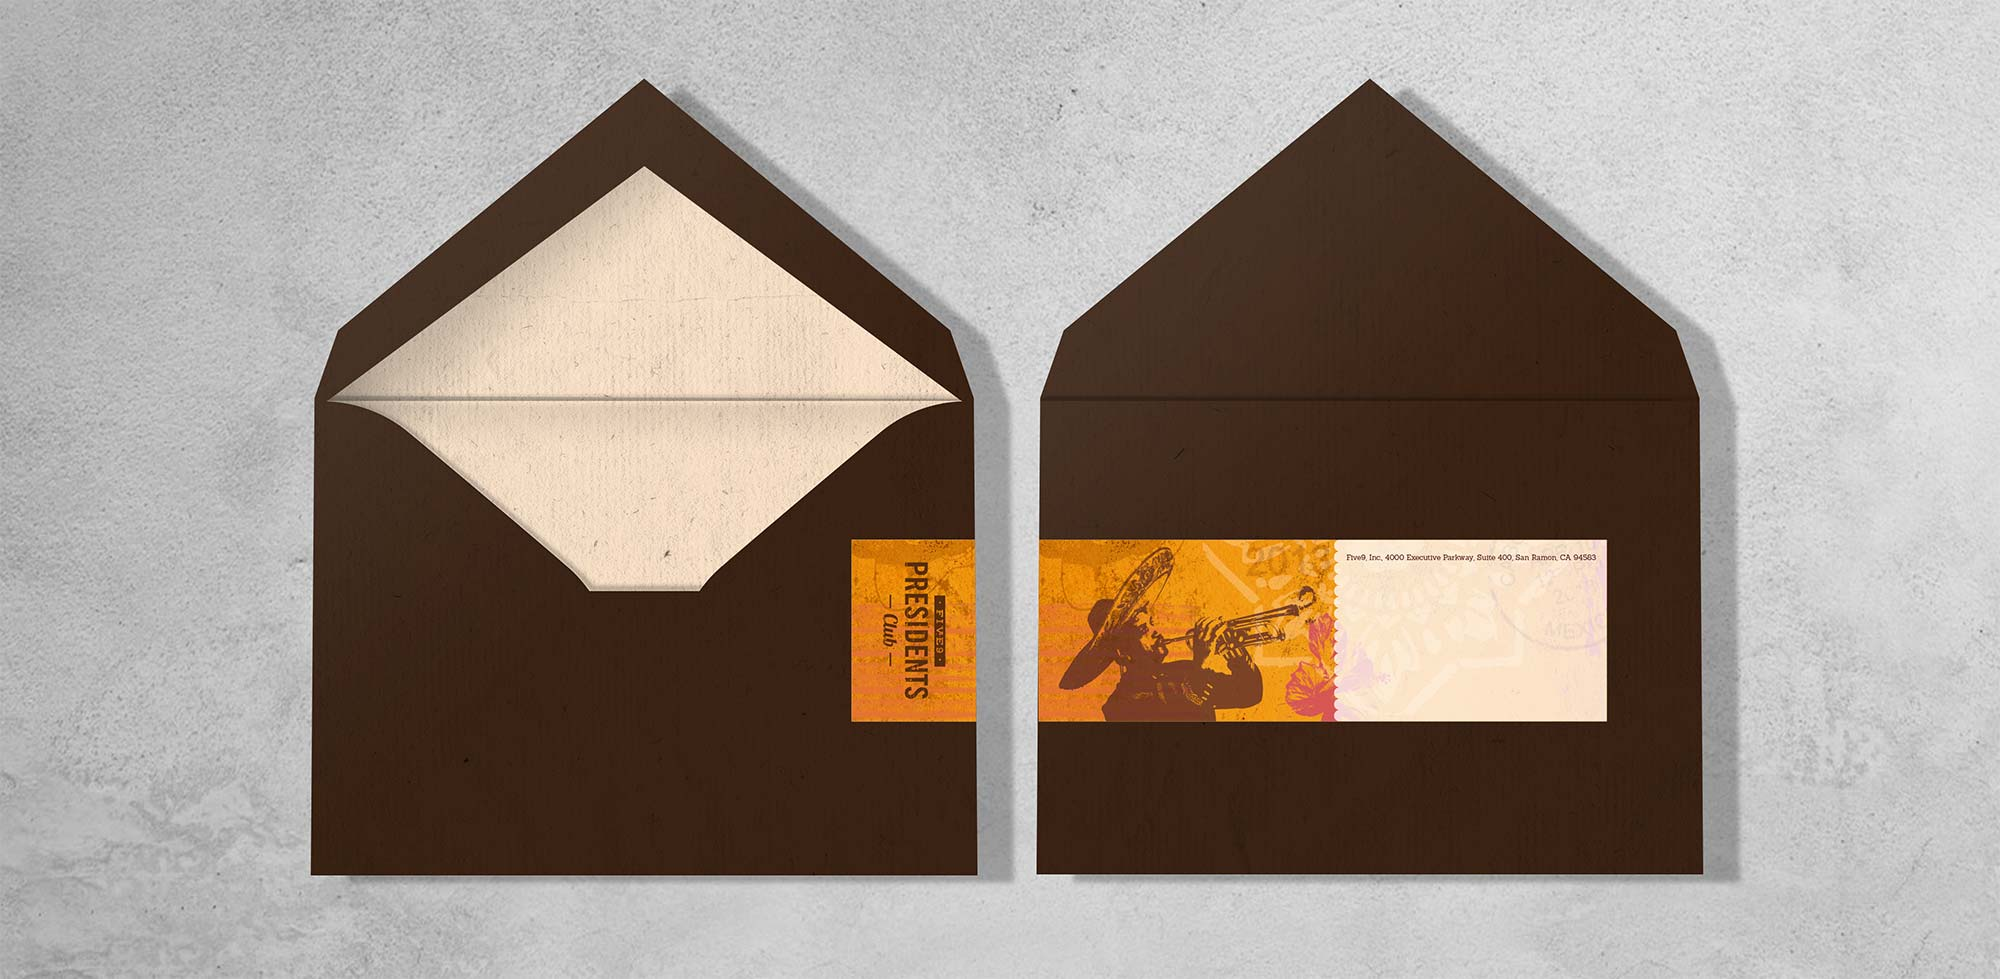 Five9 Presedents Club Envelope designed by Giselle Dale